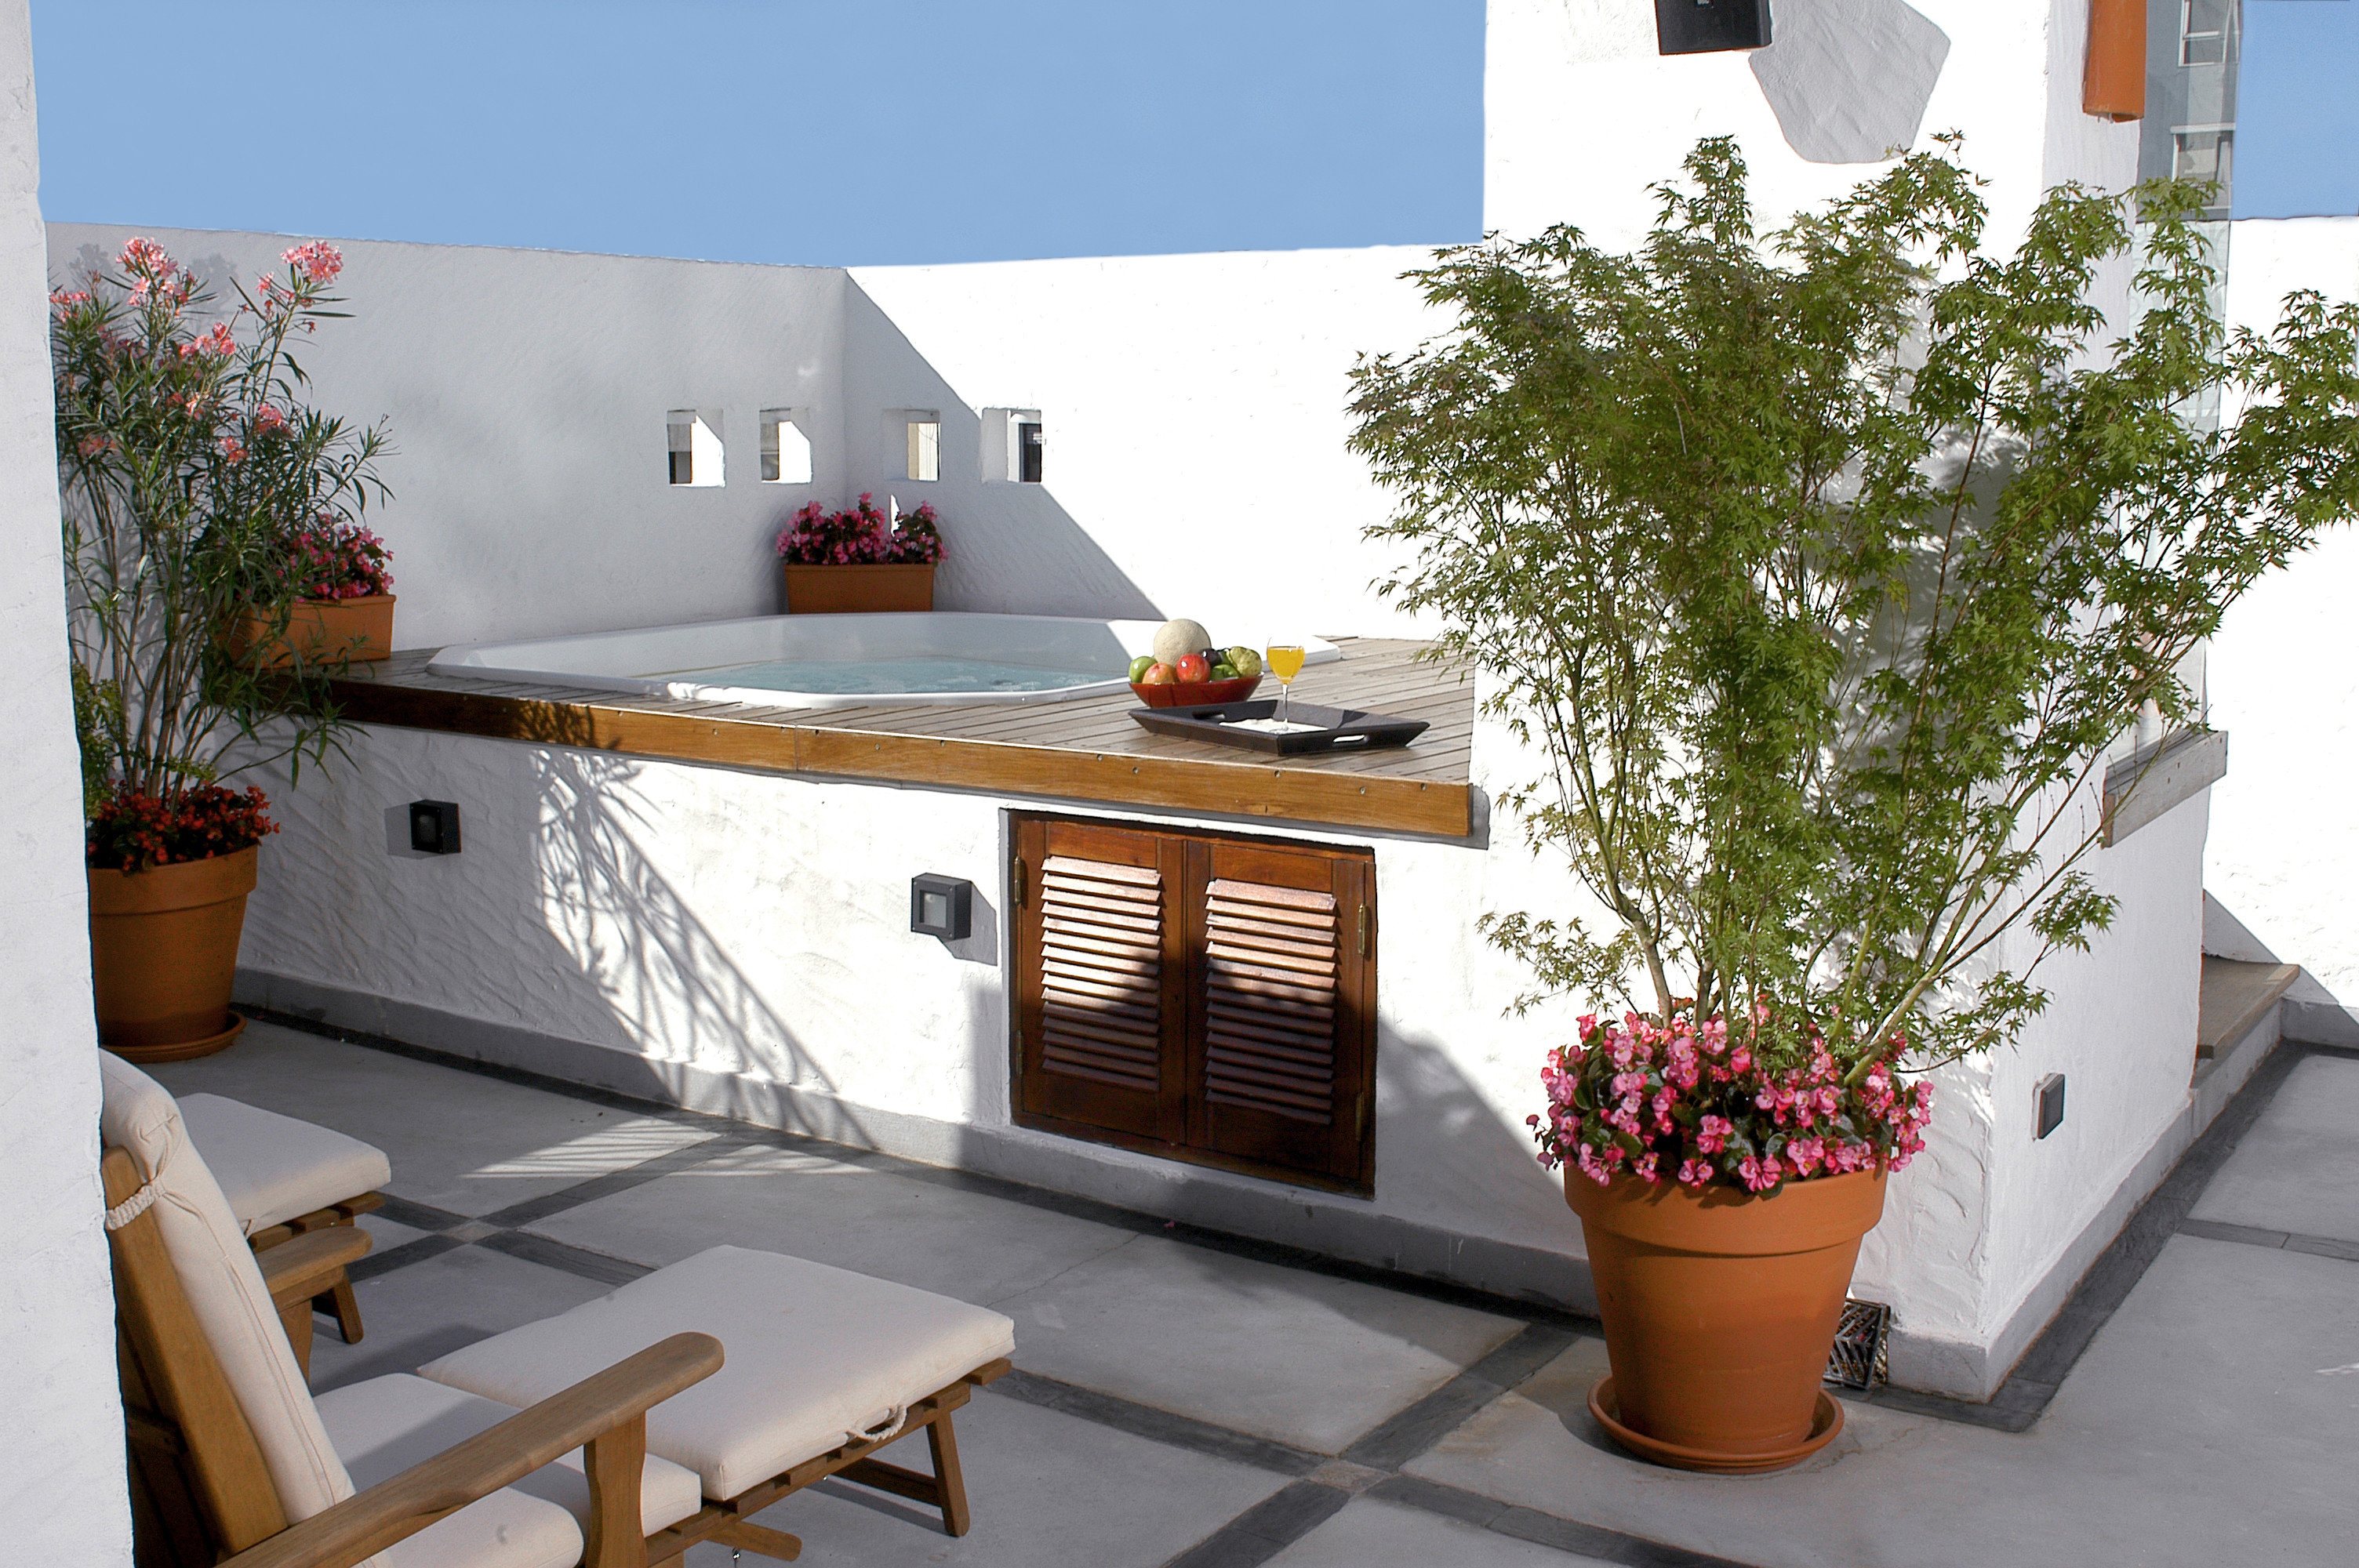 City Classic Cultural Grounds Hot tub/Jacuzzi Terrace tree property house home Villa cottage Balcony outdoor structure backyard living room